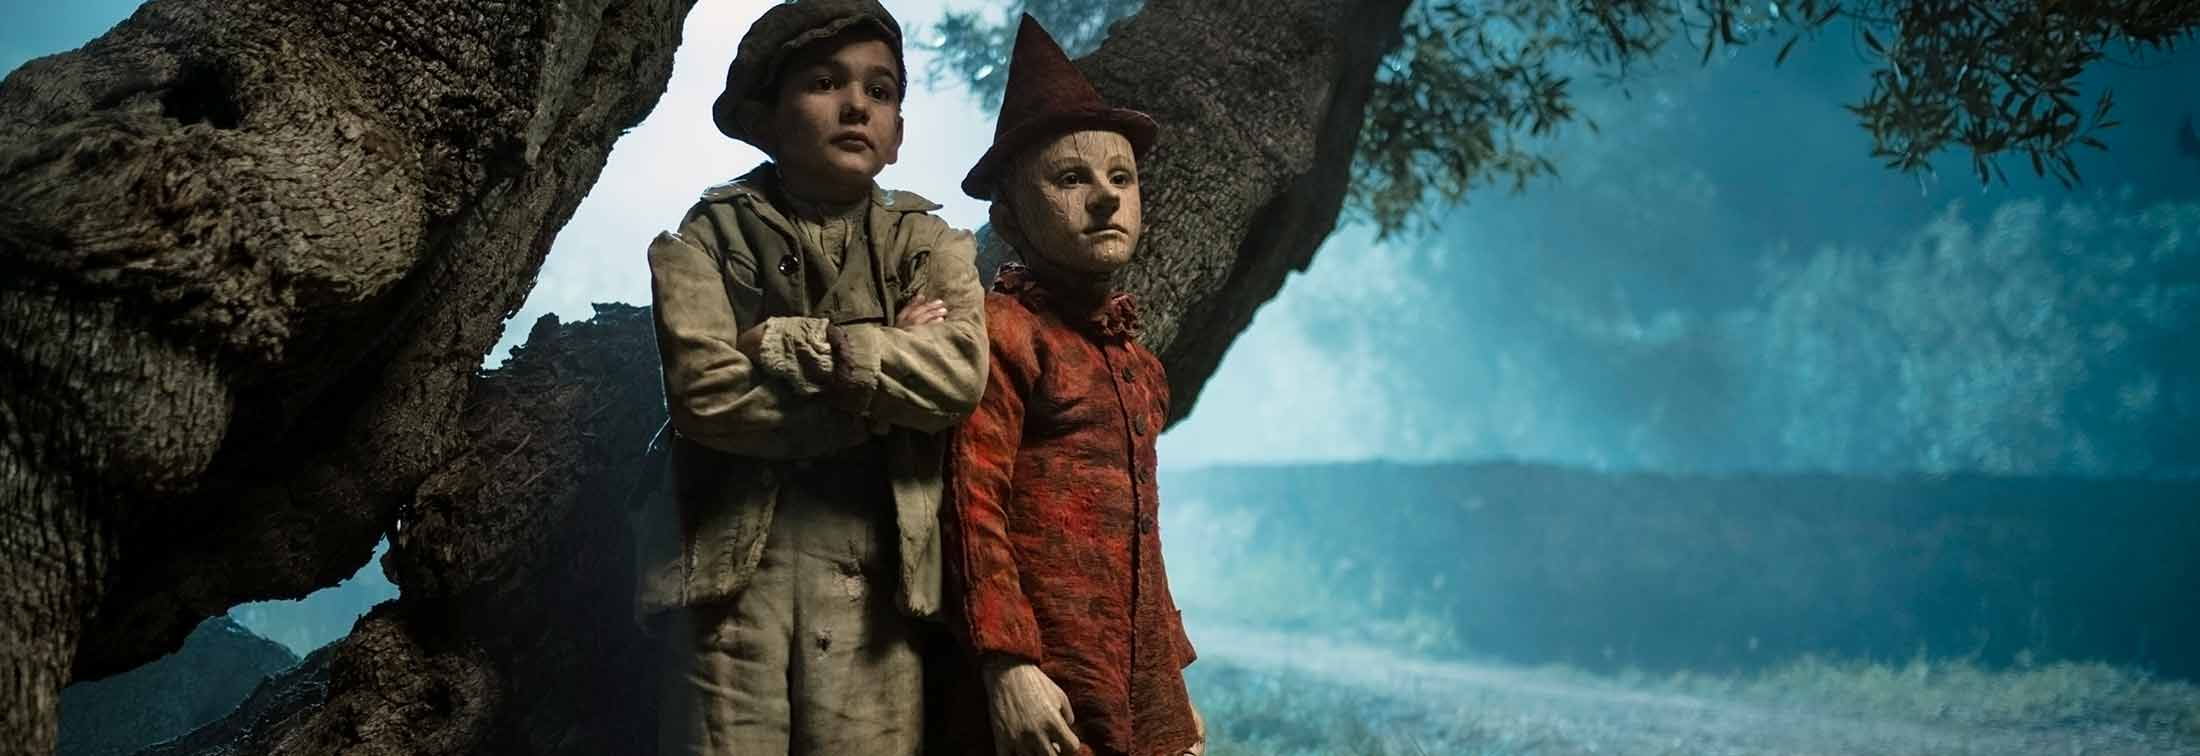 Pinocchio - A darkly fantastic adaptation of a classic tale